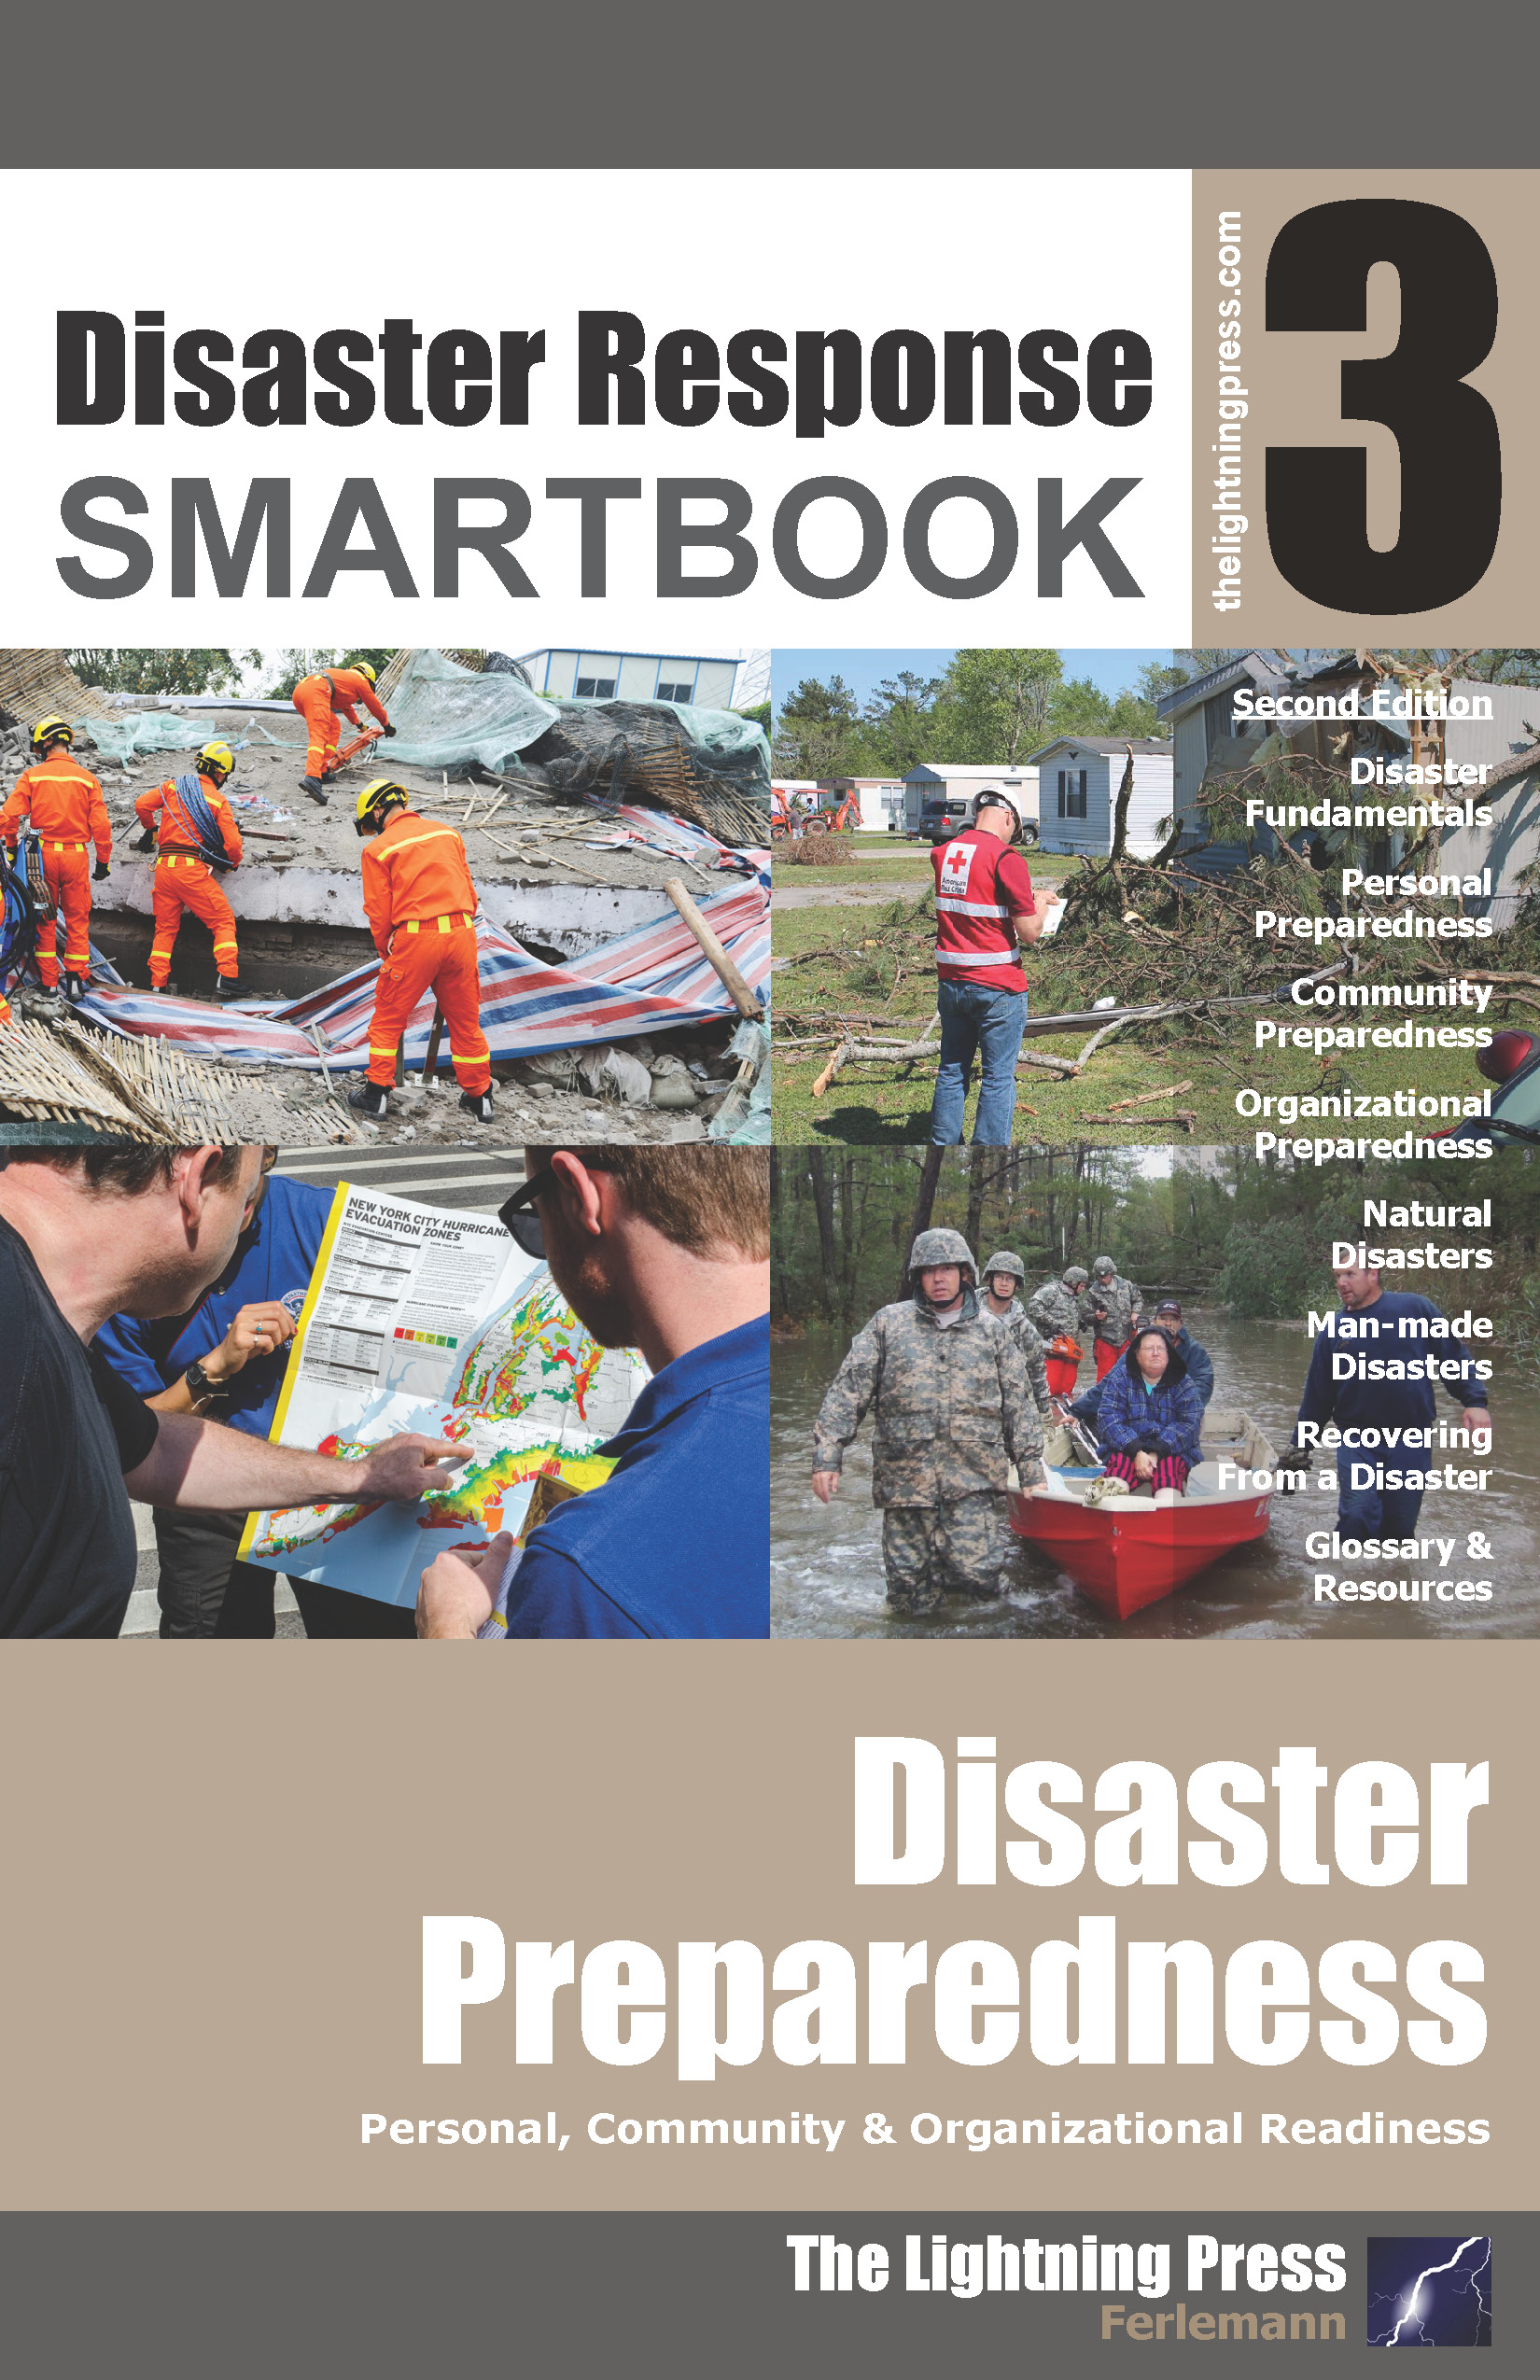 Disaster Response SMARTbook 3 - Disaster Preparedness, 2nd Ed.